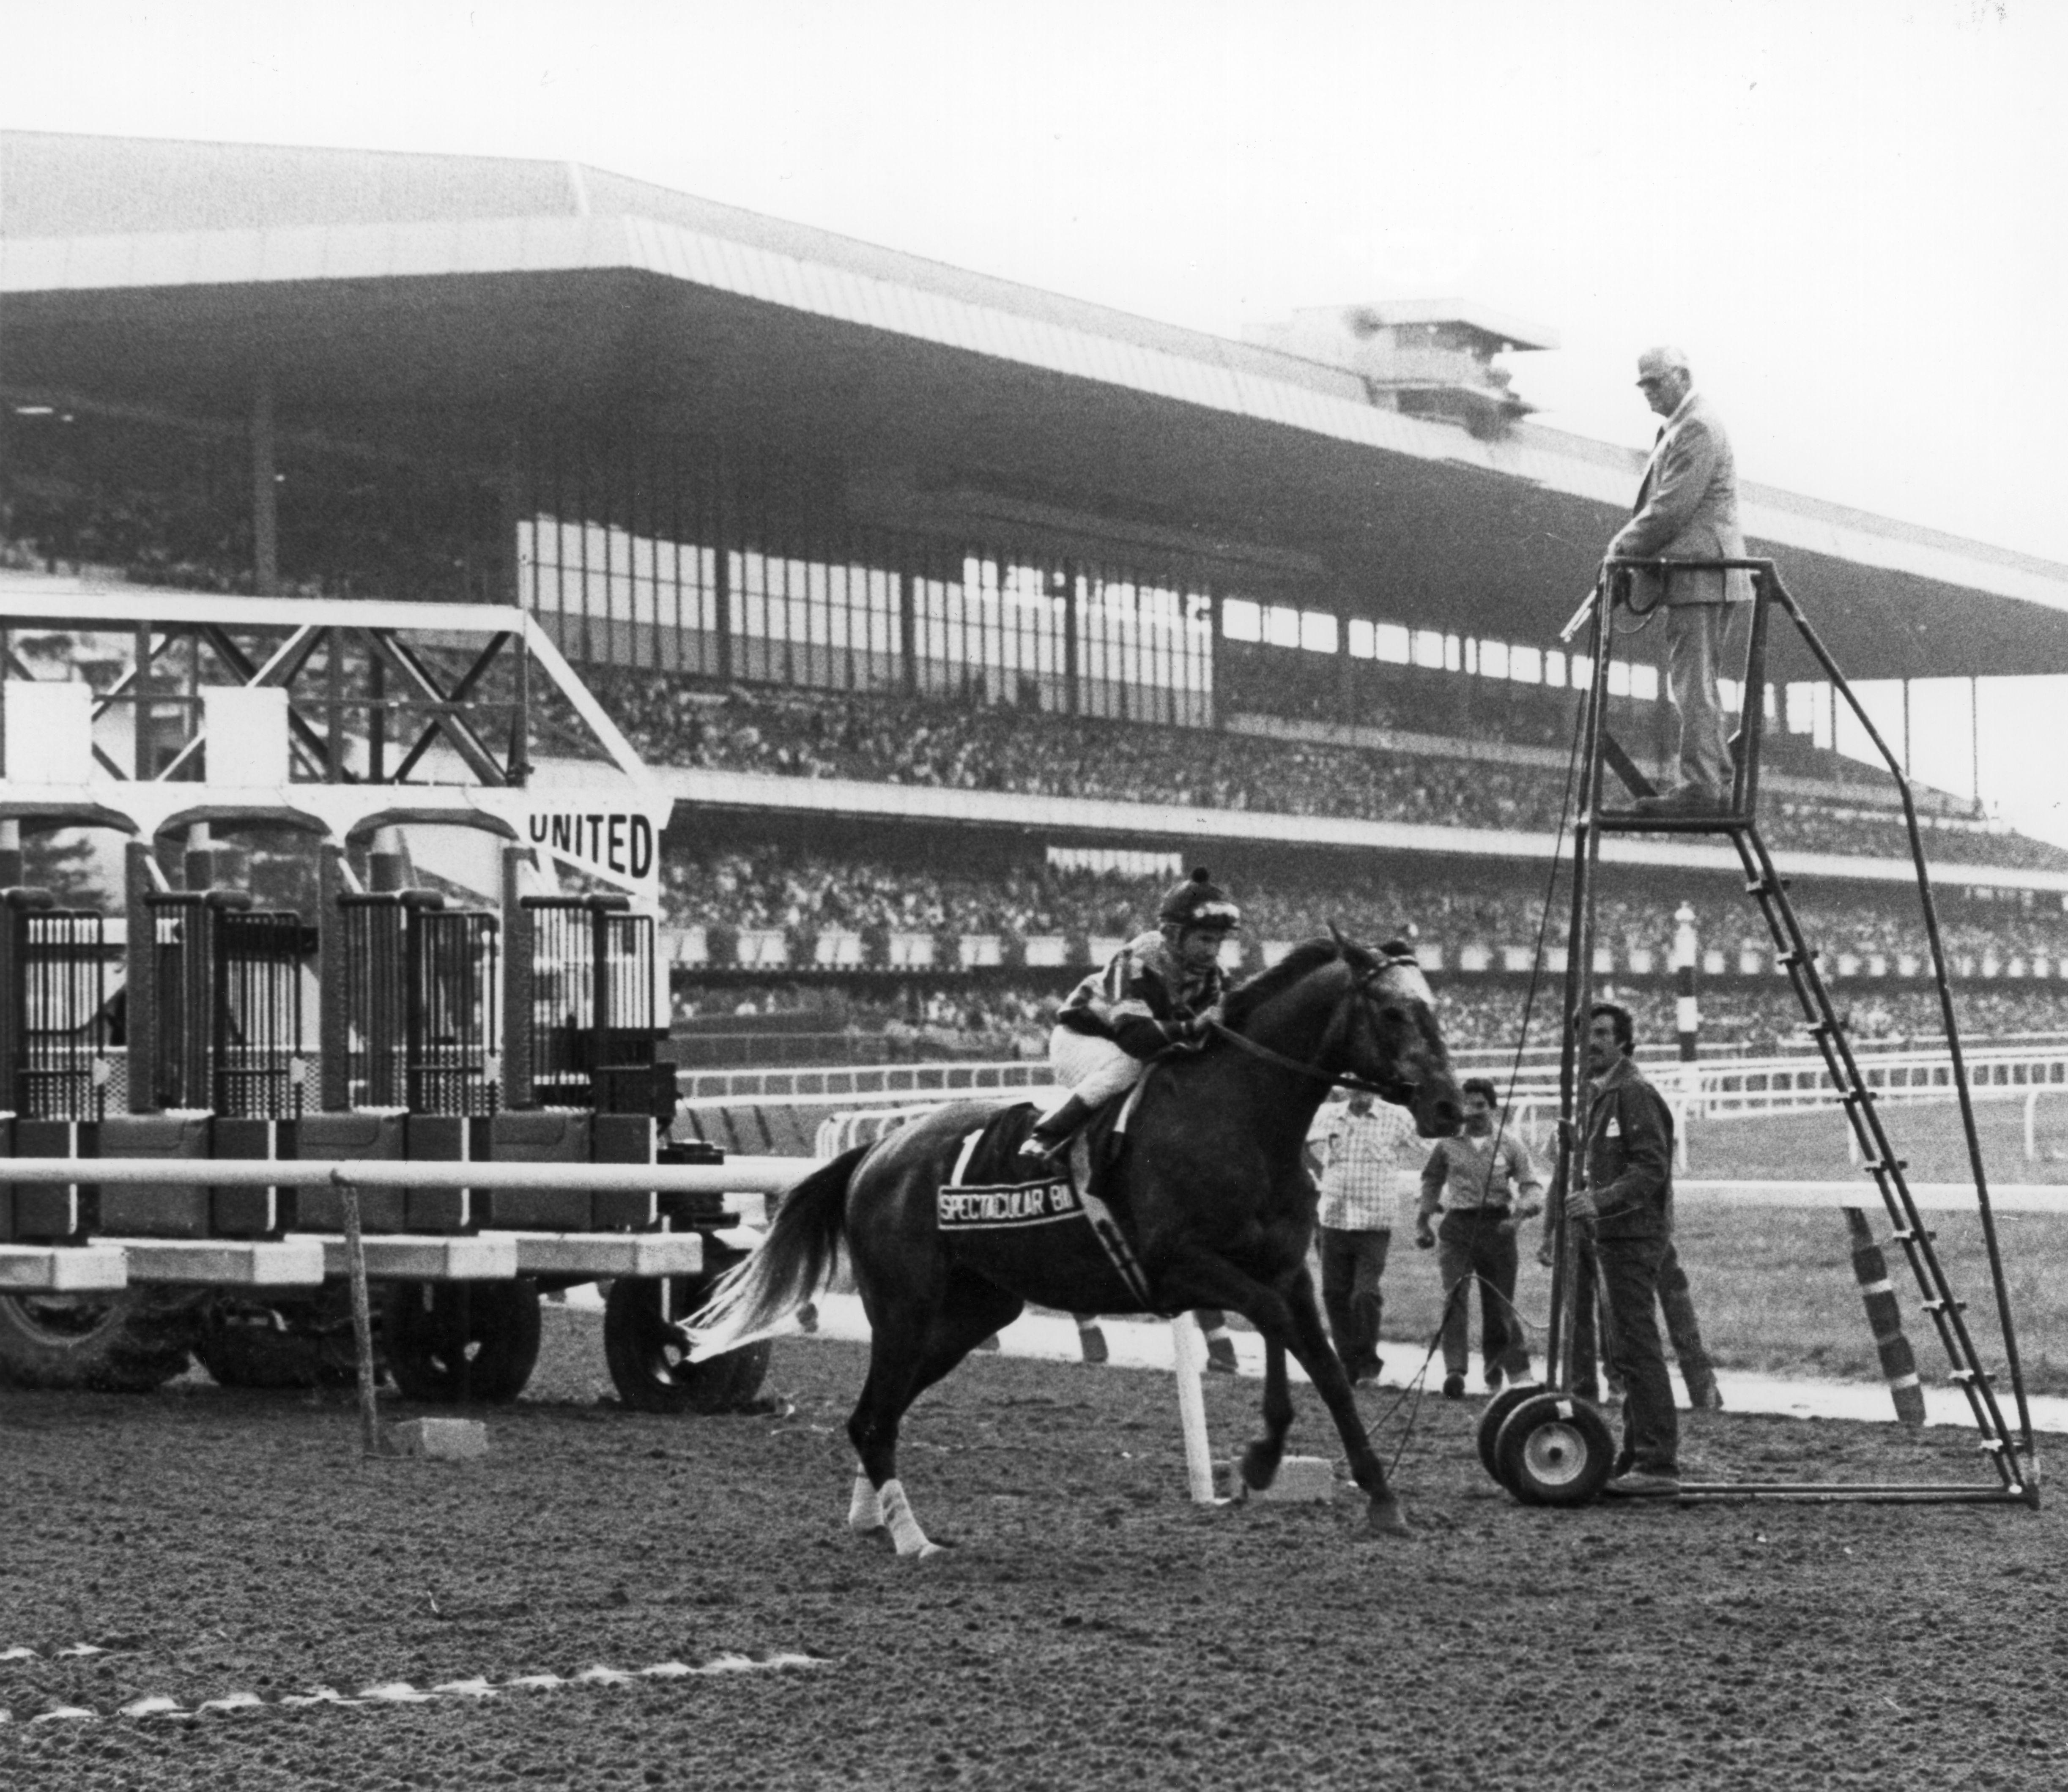 Spectacular Bid at the start of the 1980 Woodward.